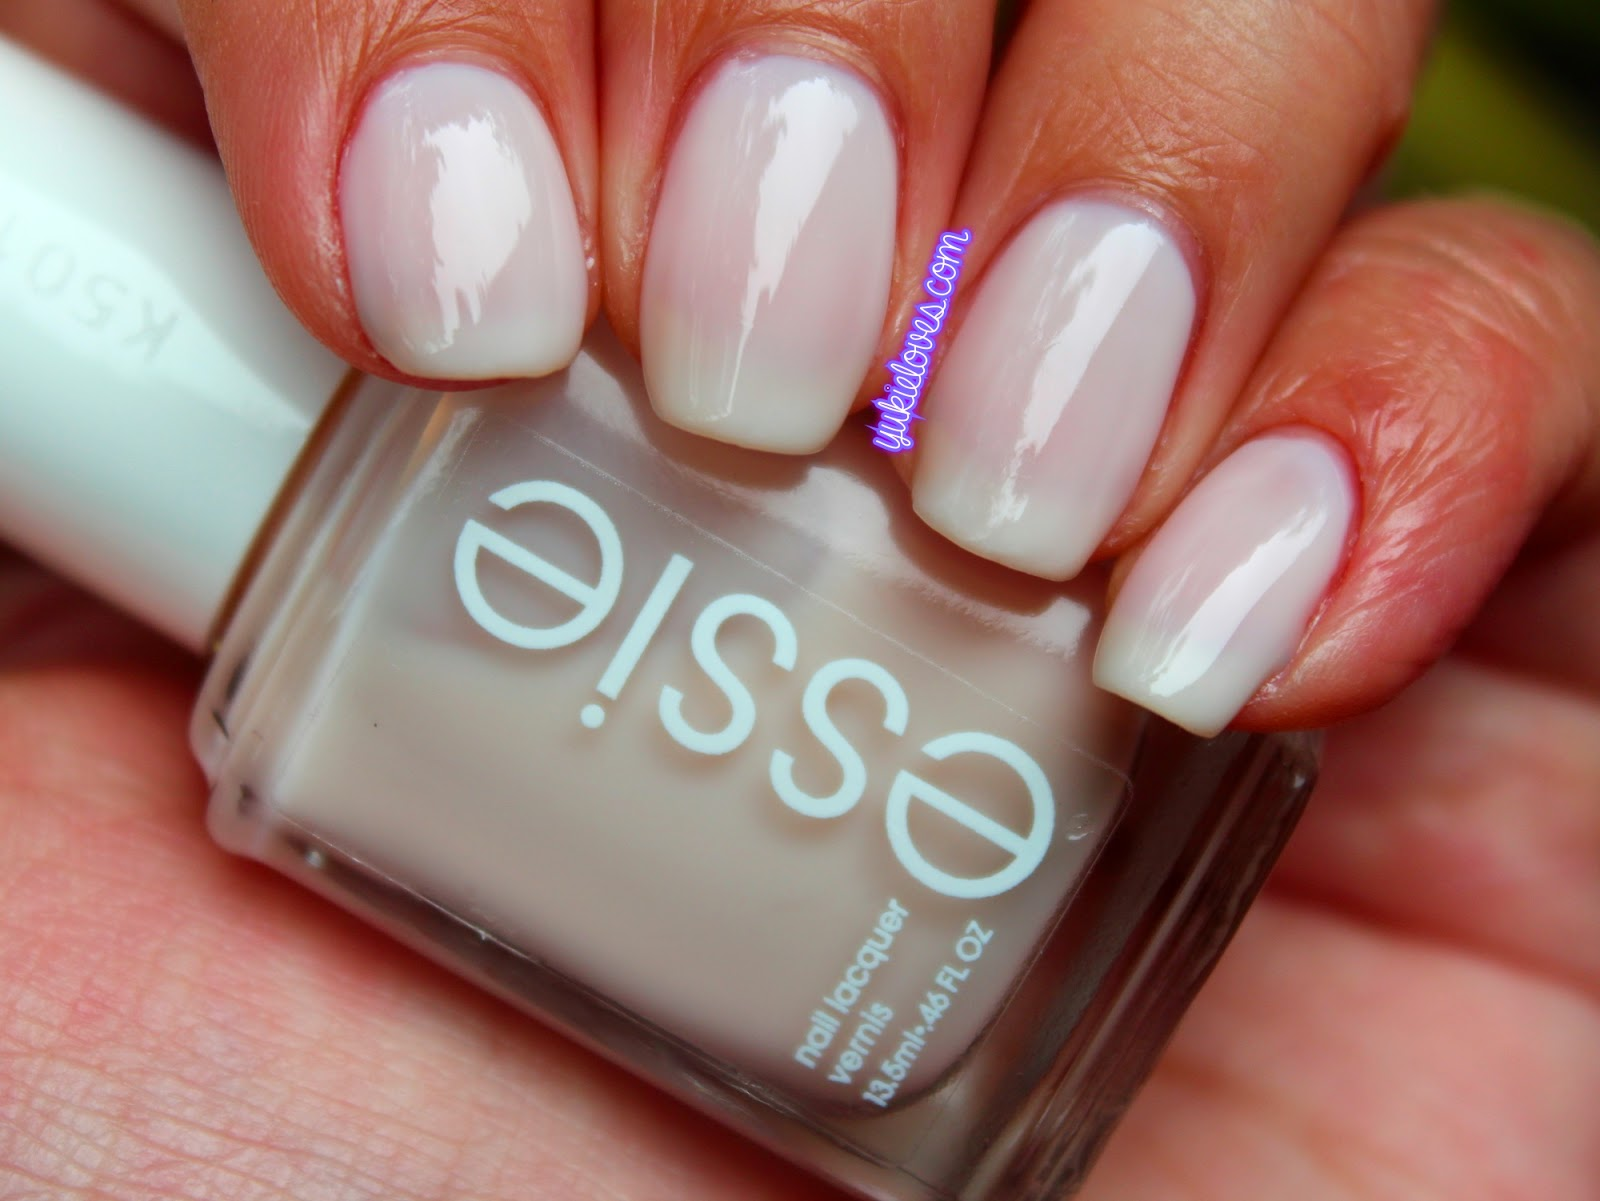 Essie Adore-A-Ball | Swatches & Review! – yukieloves.com